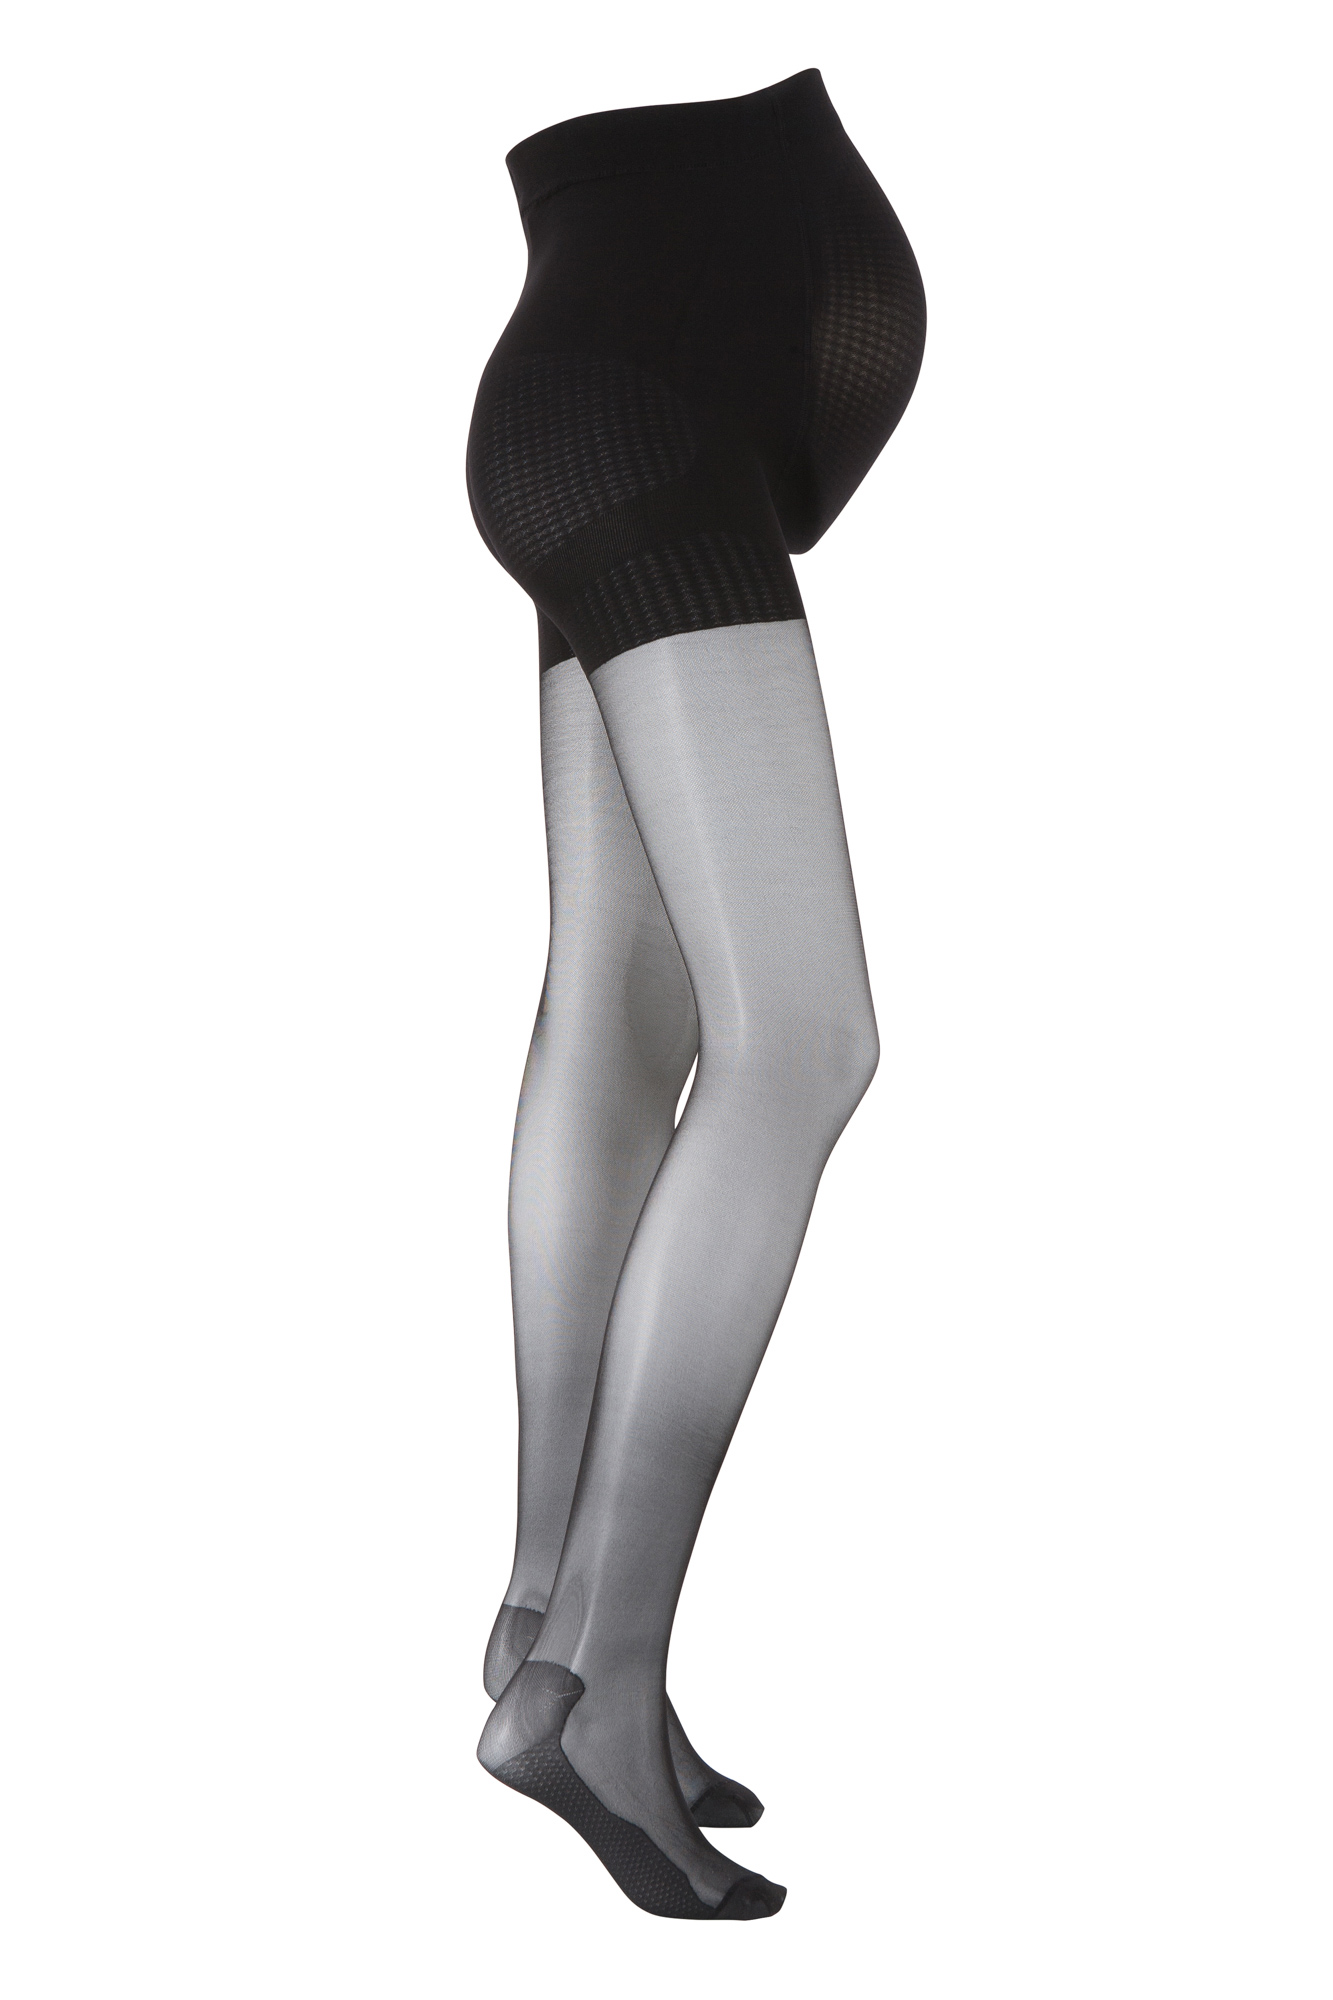 SupCare Maternity Support Tights 15-21mmHg